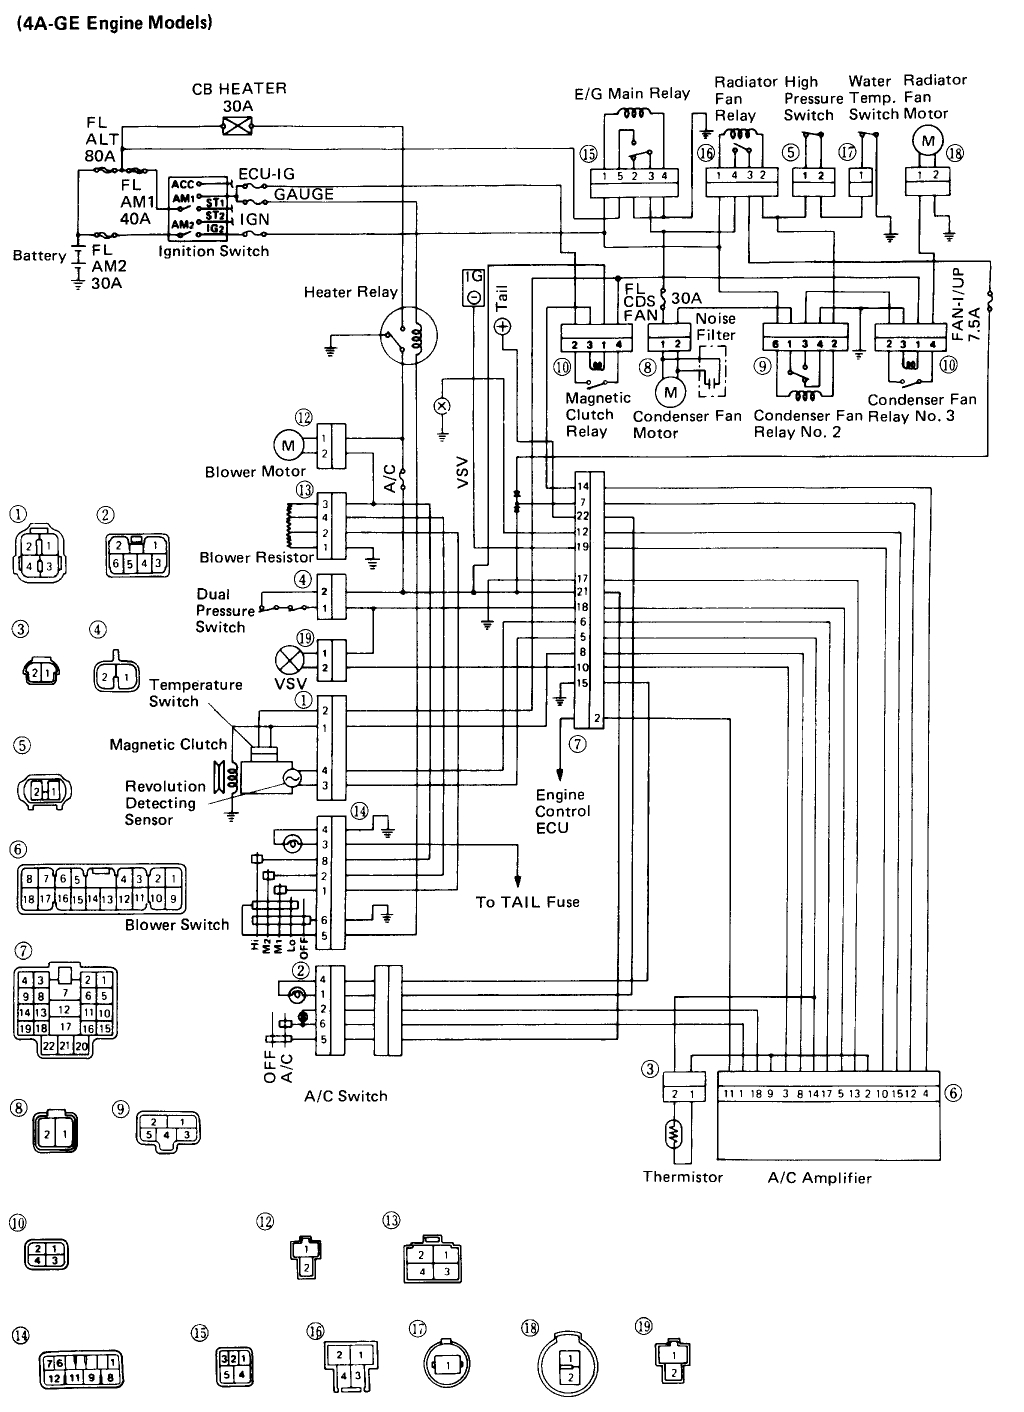 2010 toyota corolla air conditioning diagram